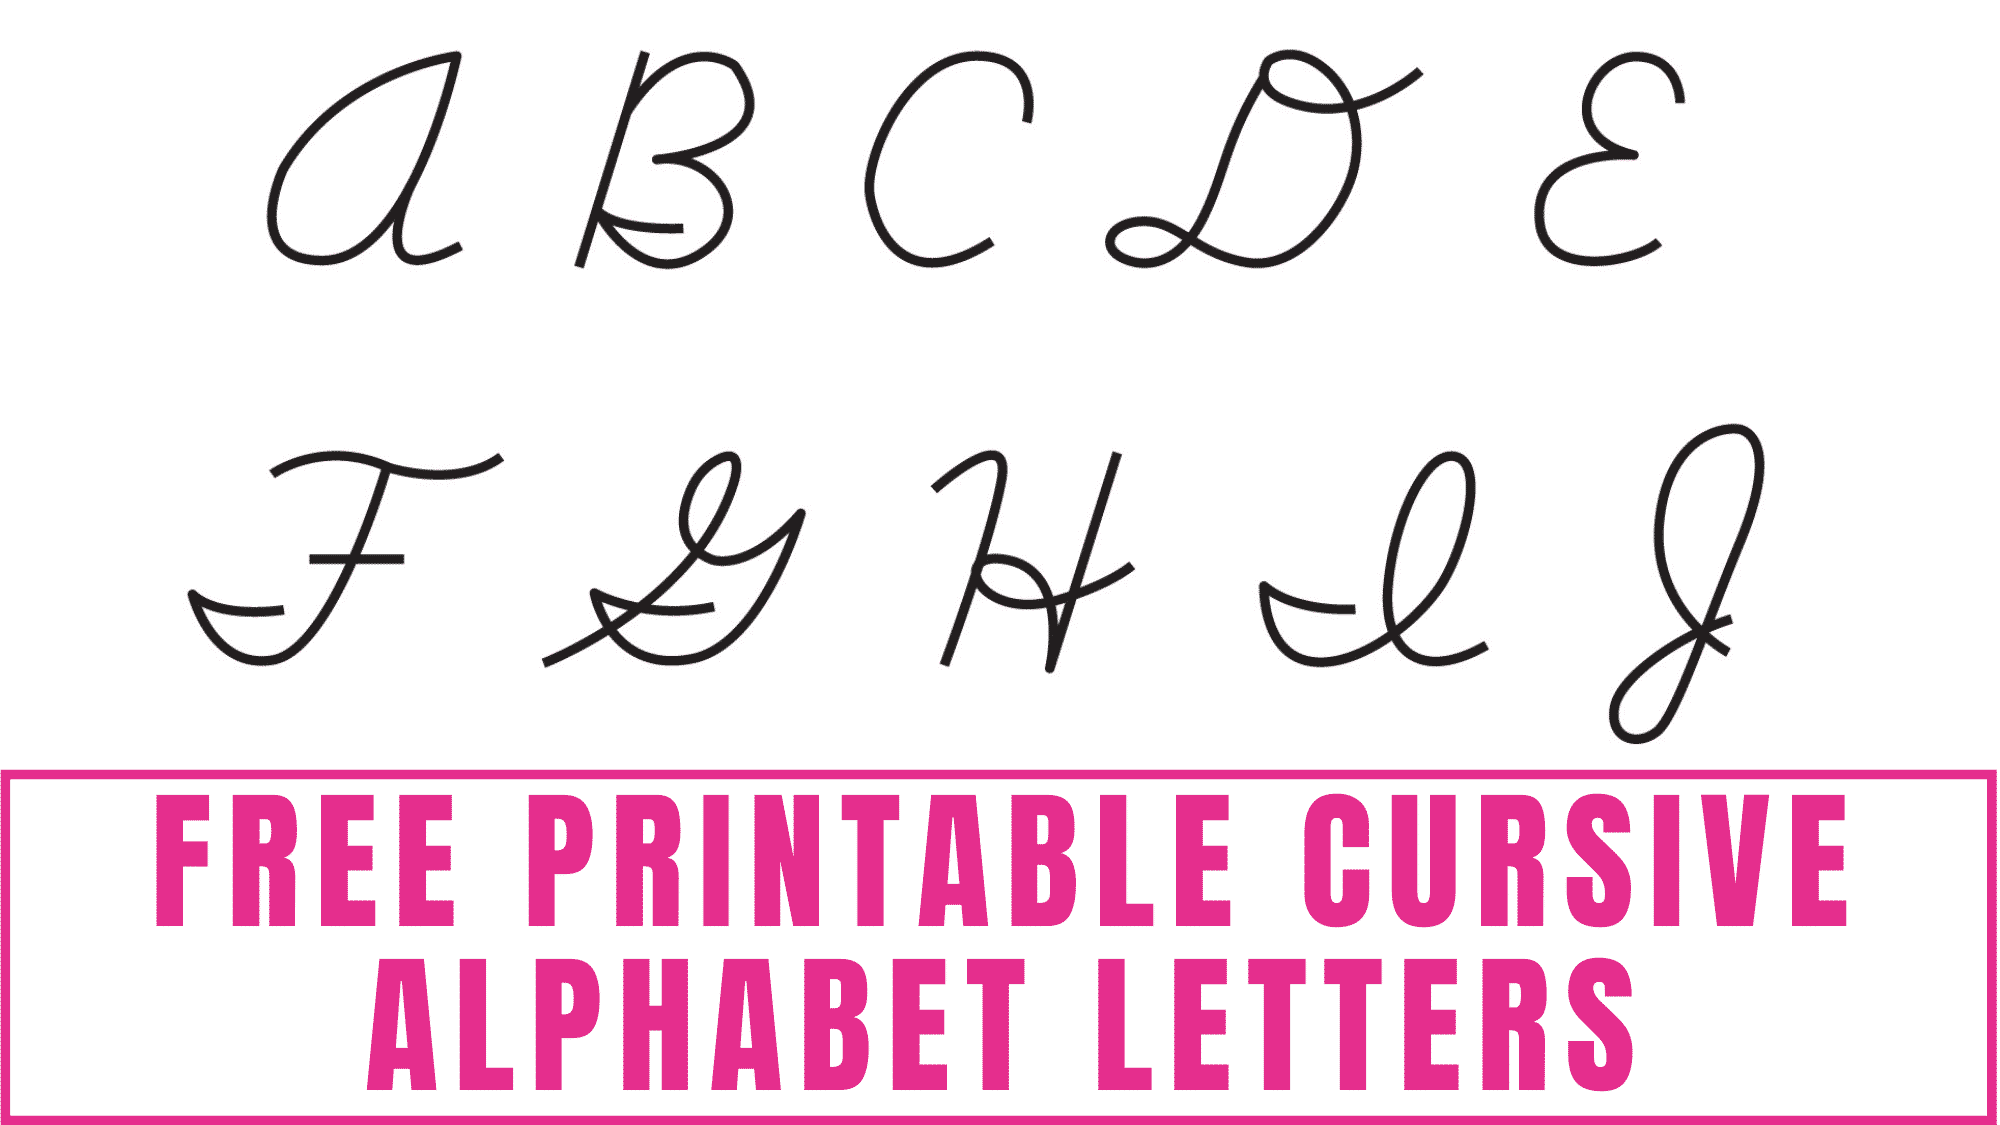 Helping your kid learn to write cursive letters? Use these simple free printable cursive alphabet letters as a guide for them to trace until they can master writing cursive letters free-hand.